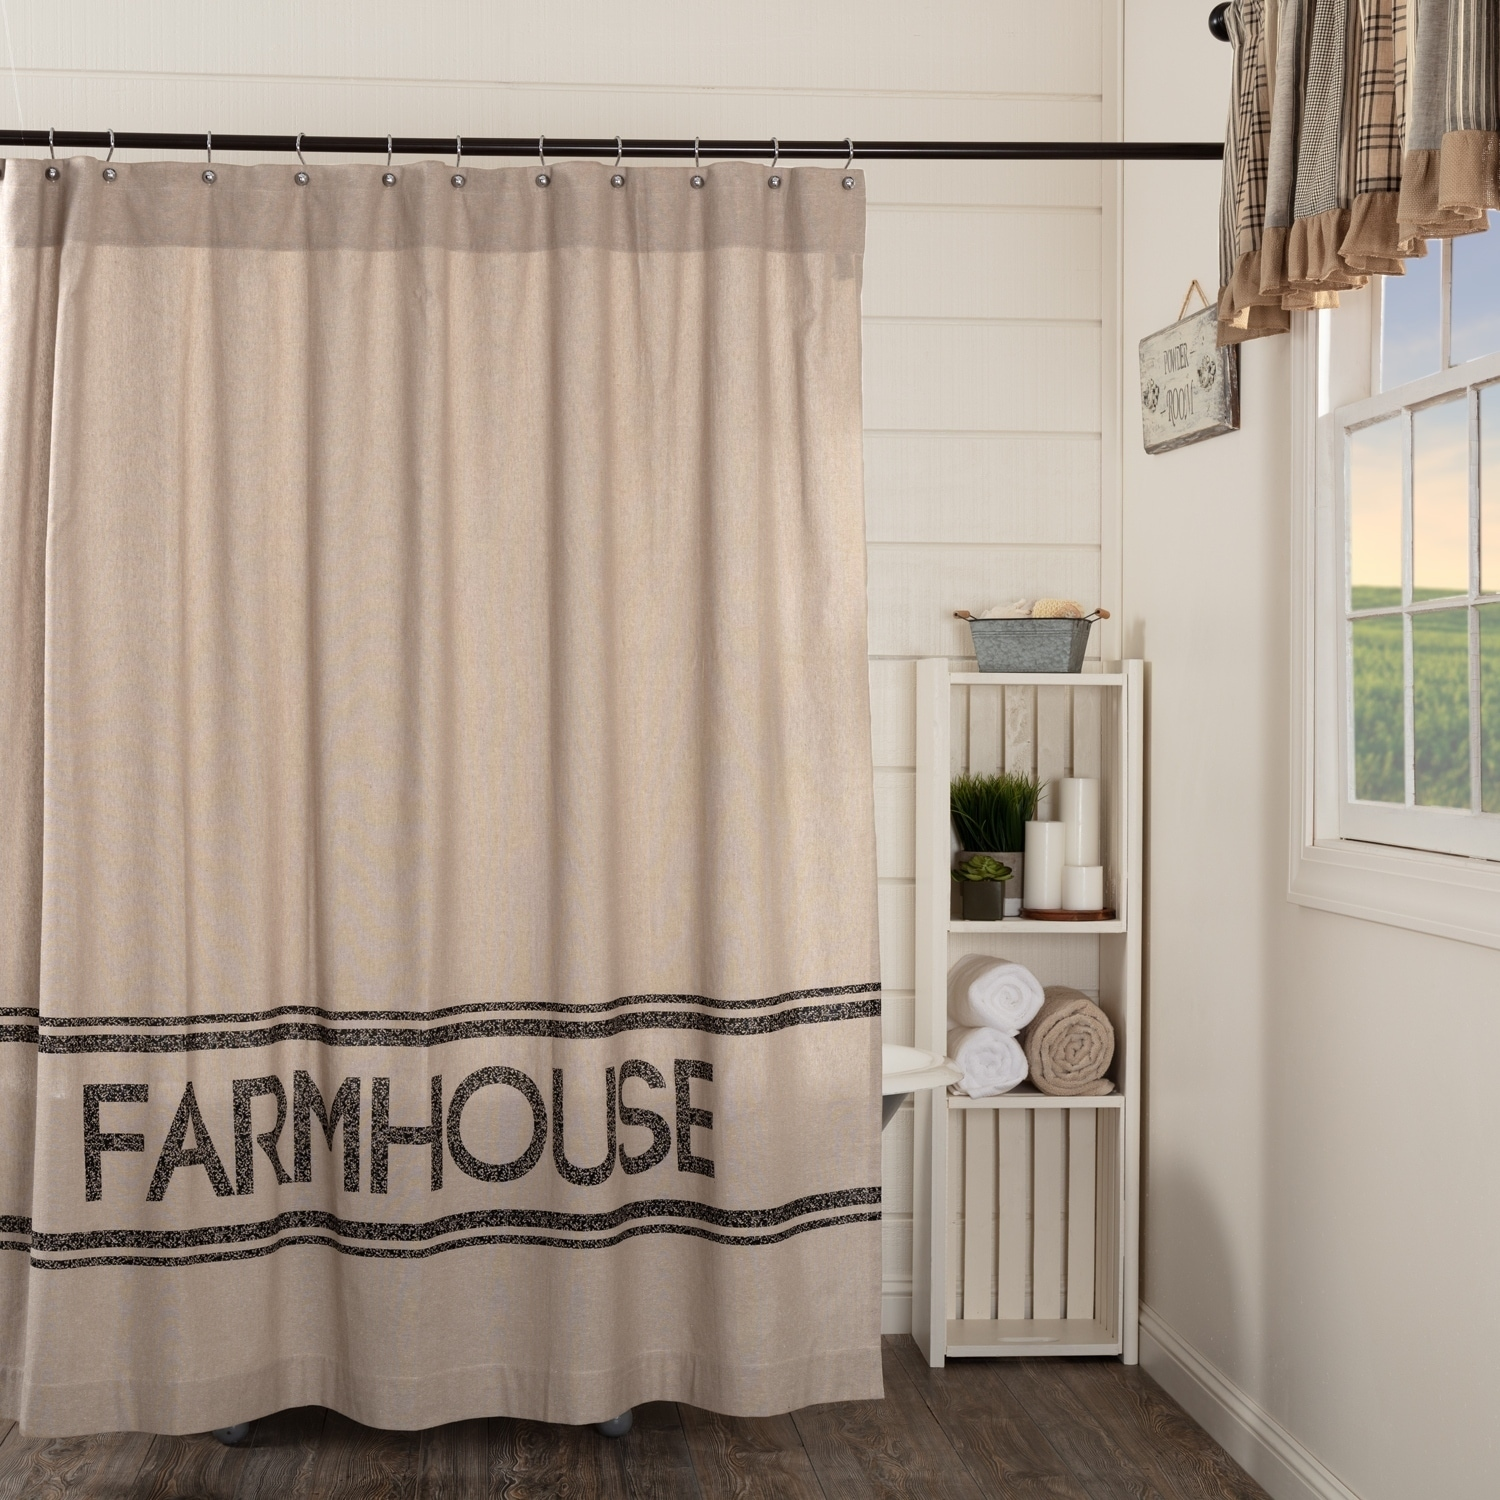 Sawyer Mill Charcoal Farmhouse Shower Curtain 72x72 On Sale Overstock 26275539